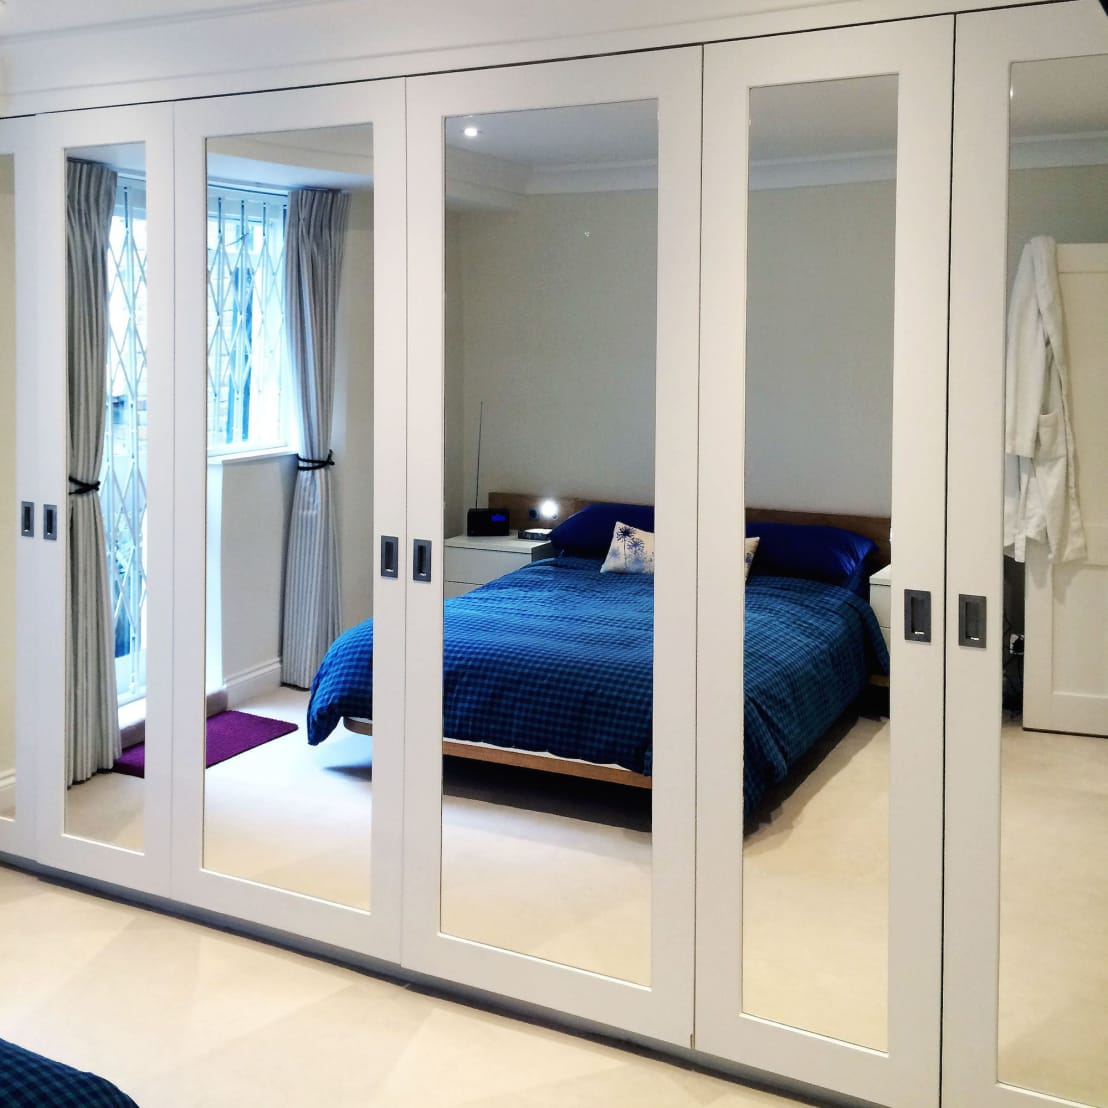 Designer Wardrobes For Interior Inspiration In Amersham: 15 Pictures Of Cupboards And Wardrobes In Indian Homes